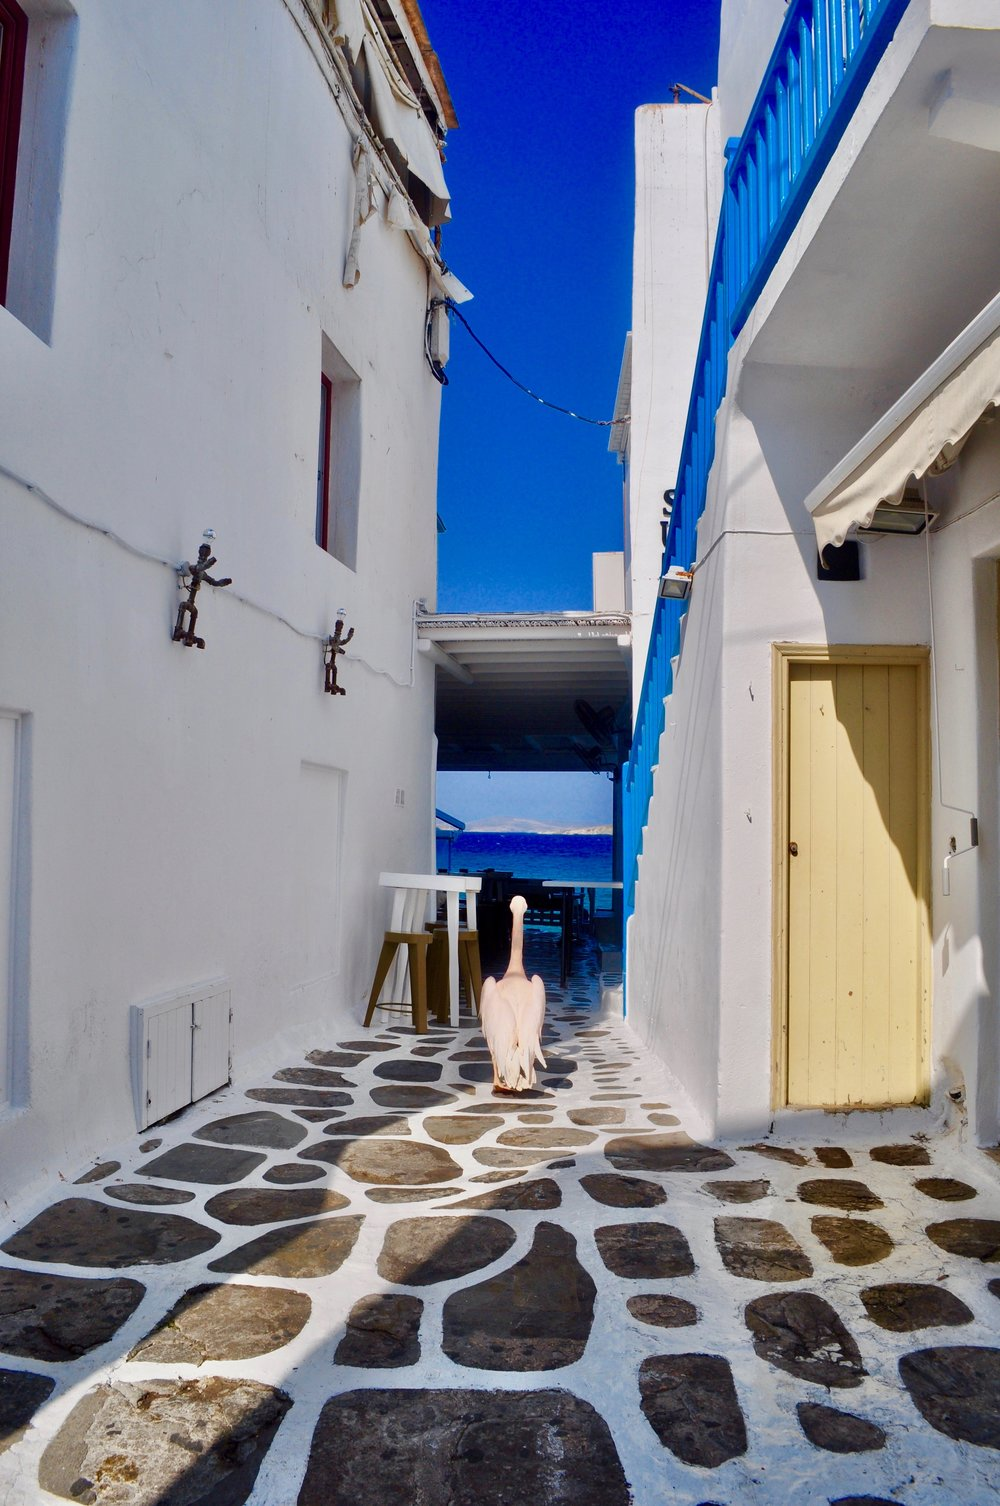 Half Day in the Stunning Mykonos Greece - A Happy Passport #mykonos #greece #travel